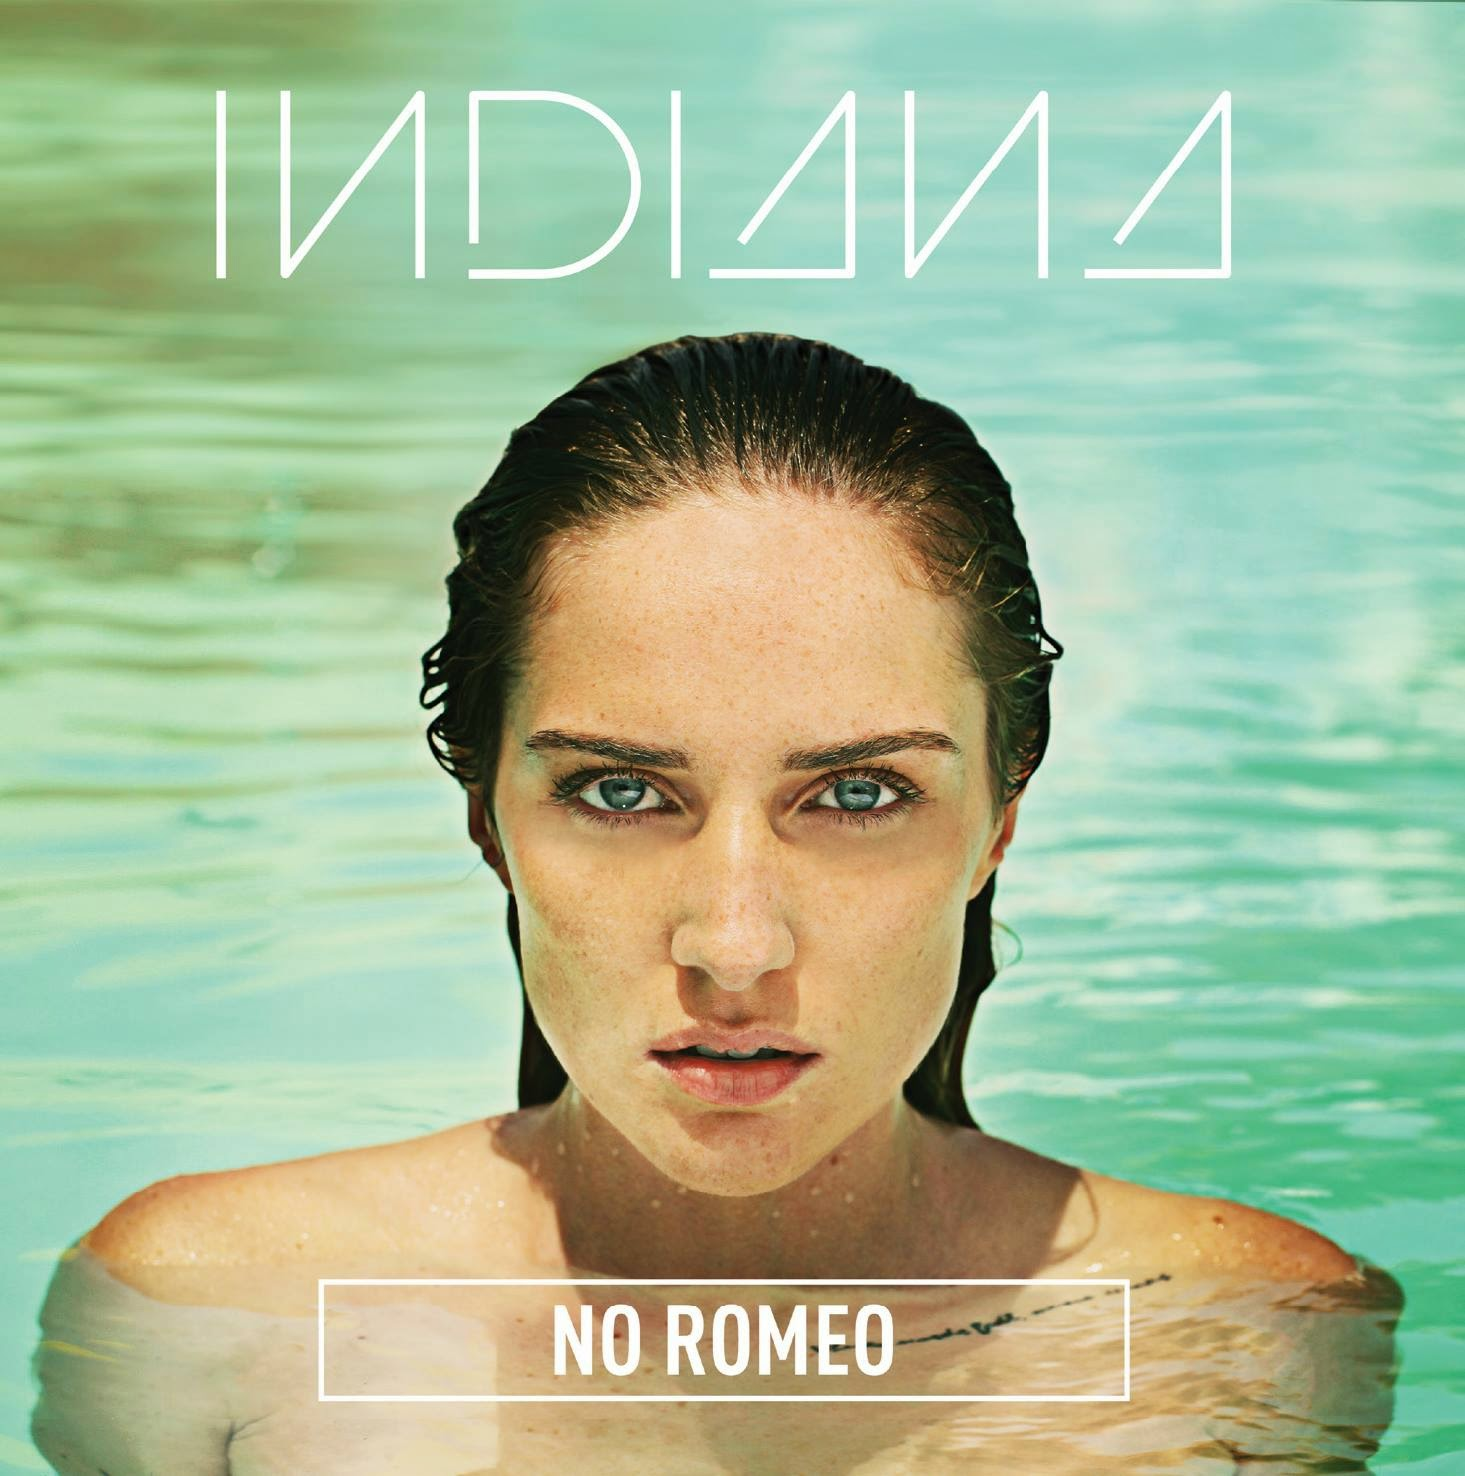 Indiana No Romeo